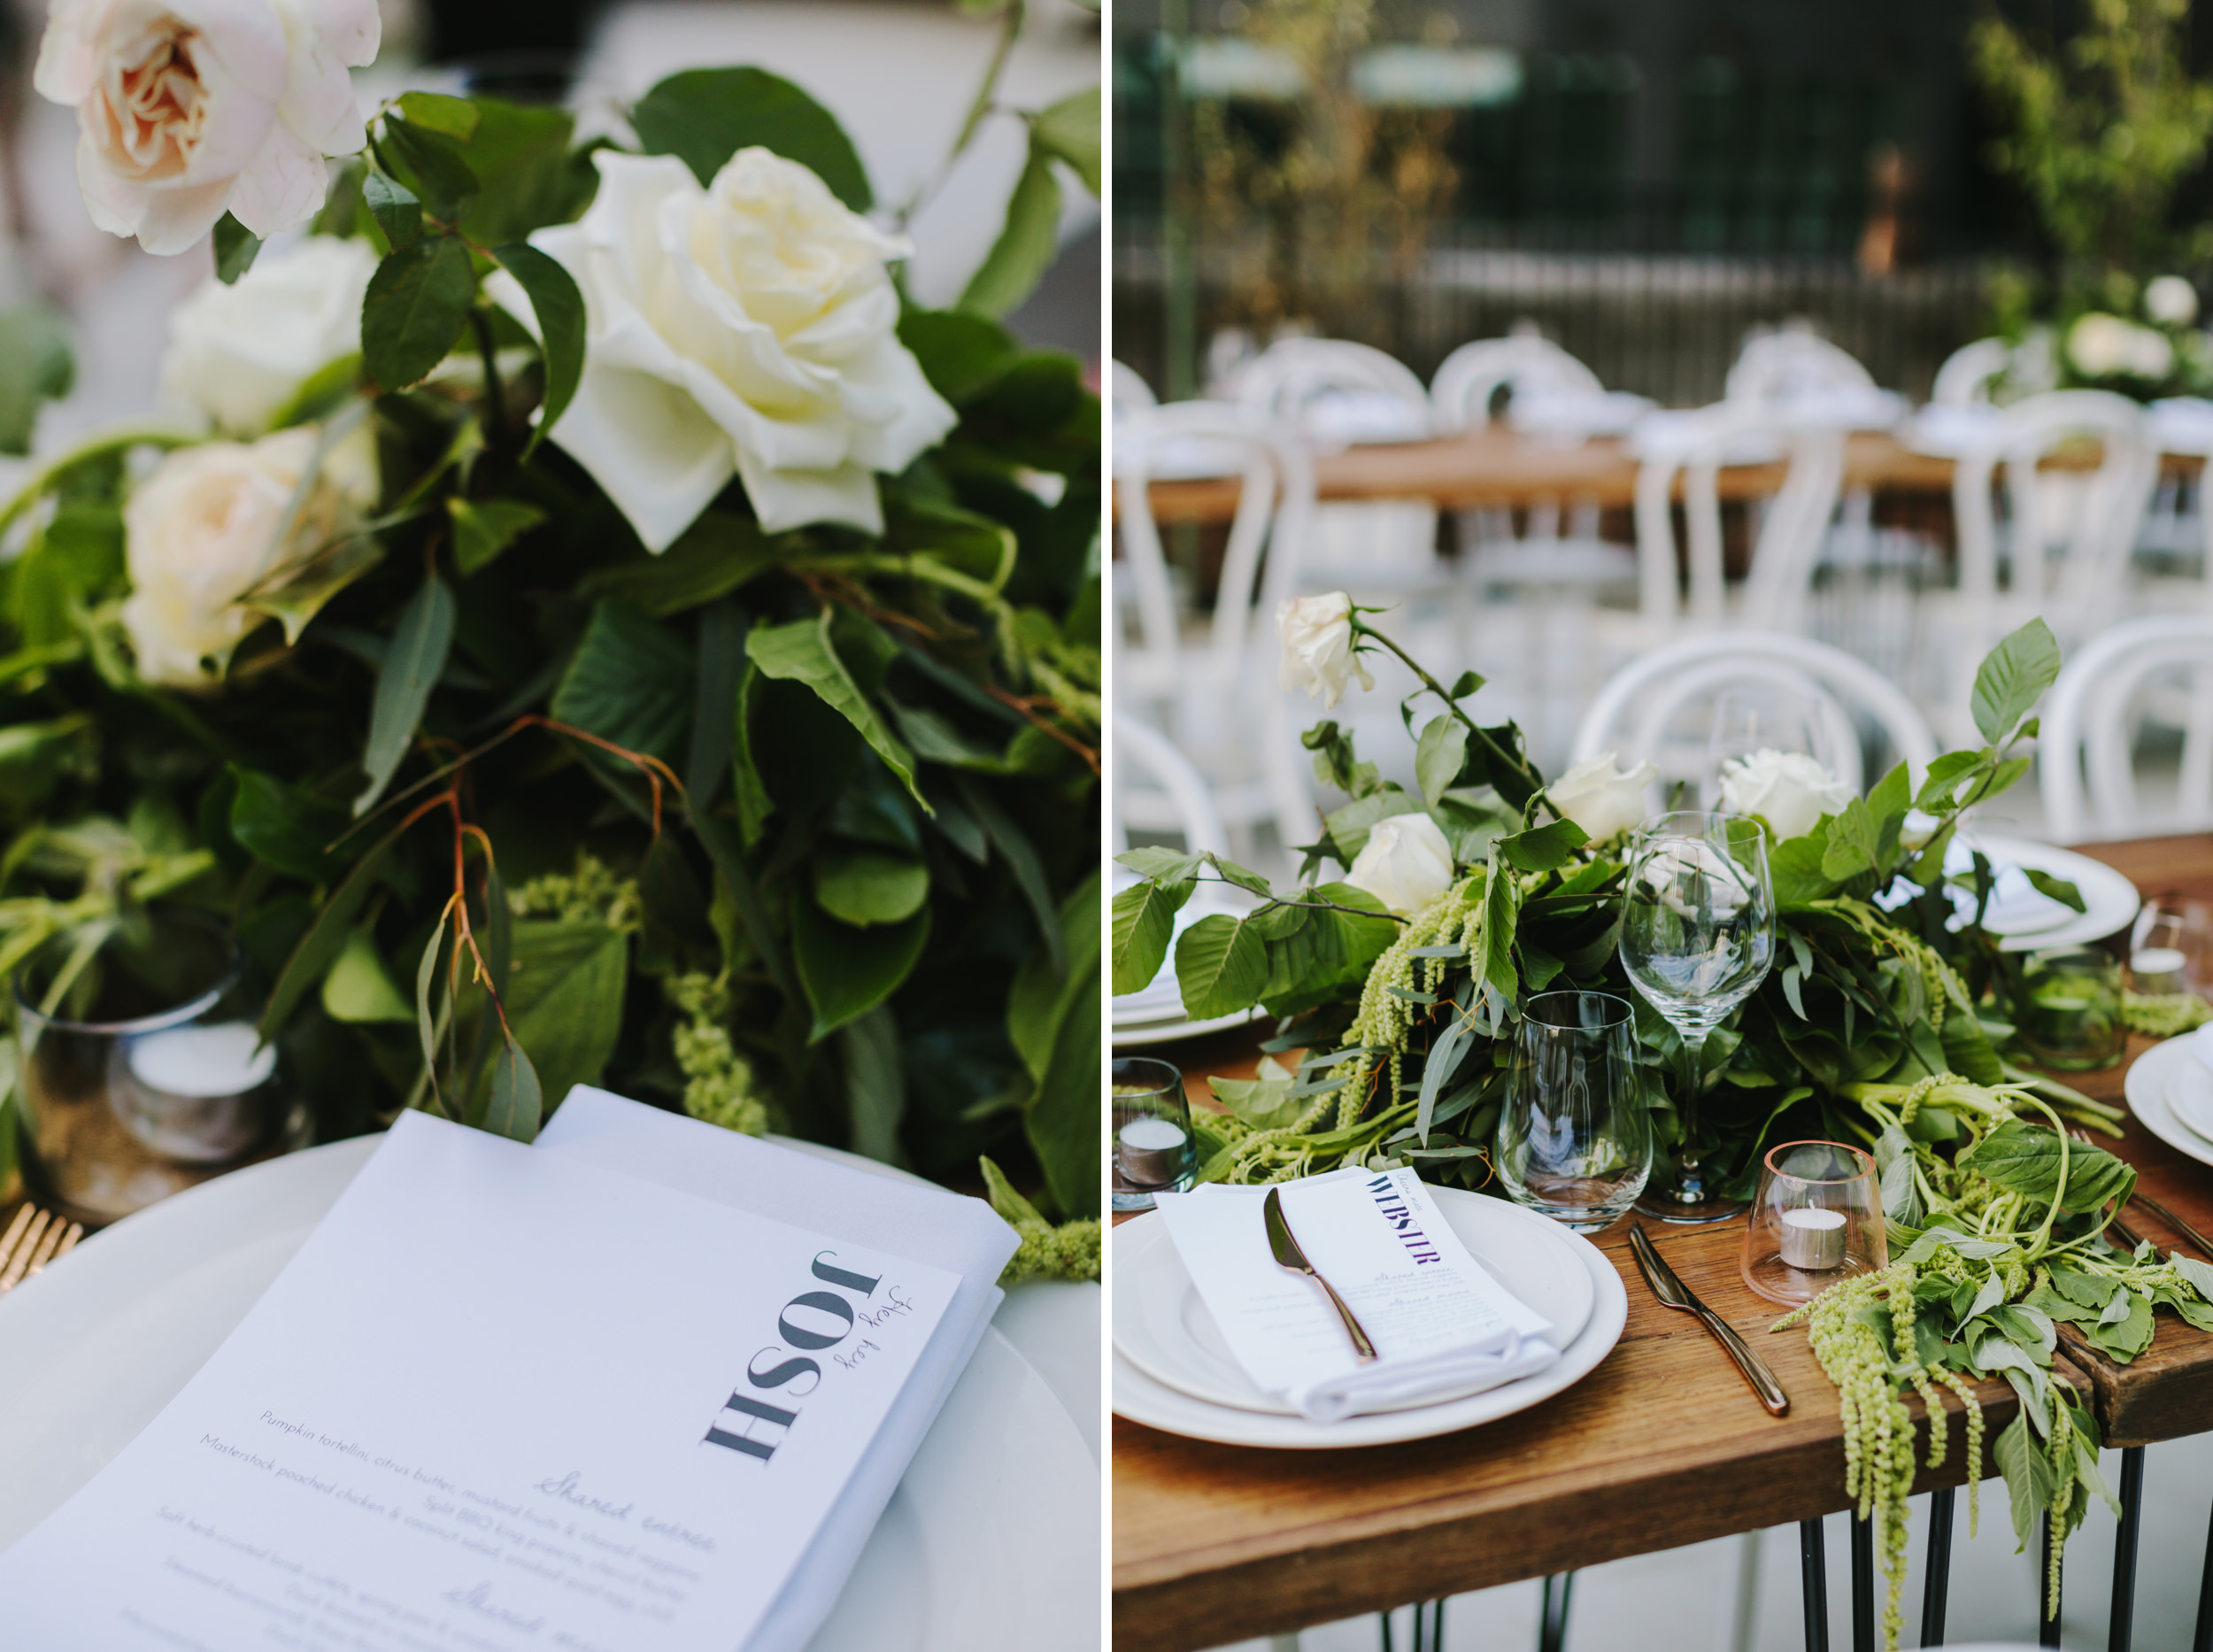 Melbourne_City_Rooftop_Wedding_Tyson_Brigette082.JPG